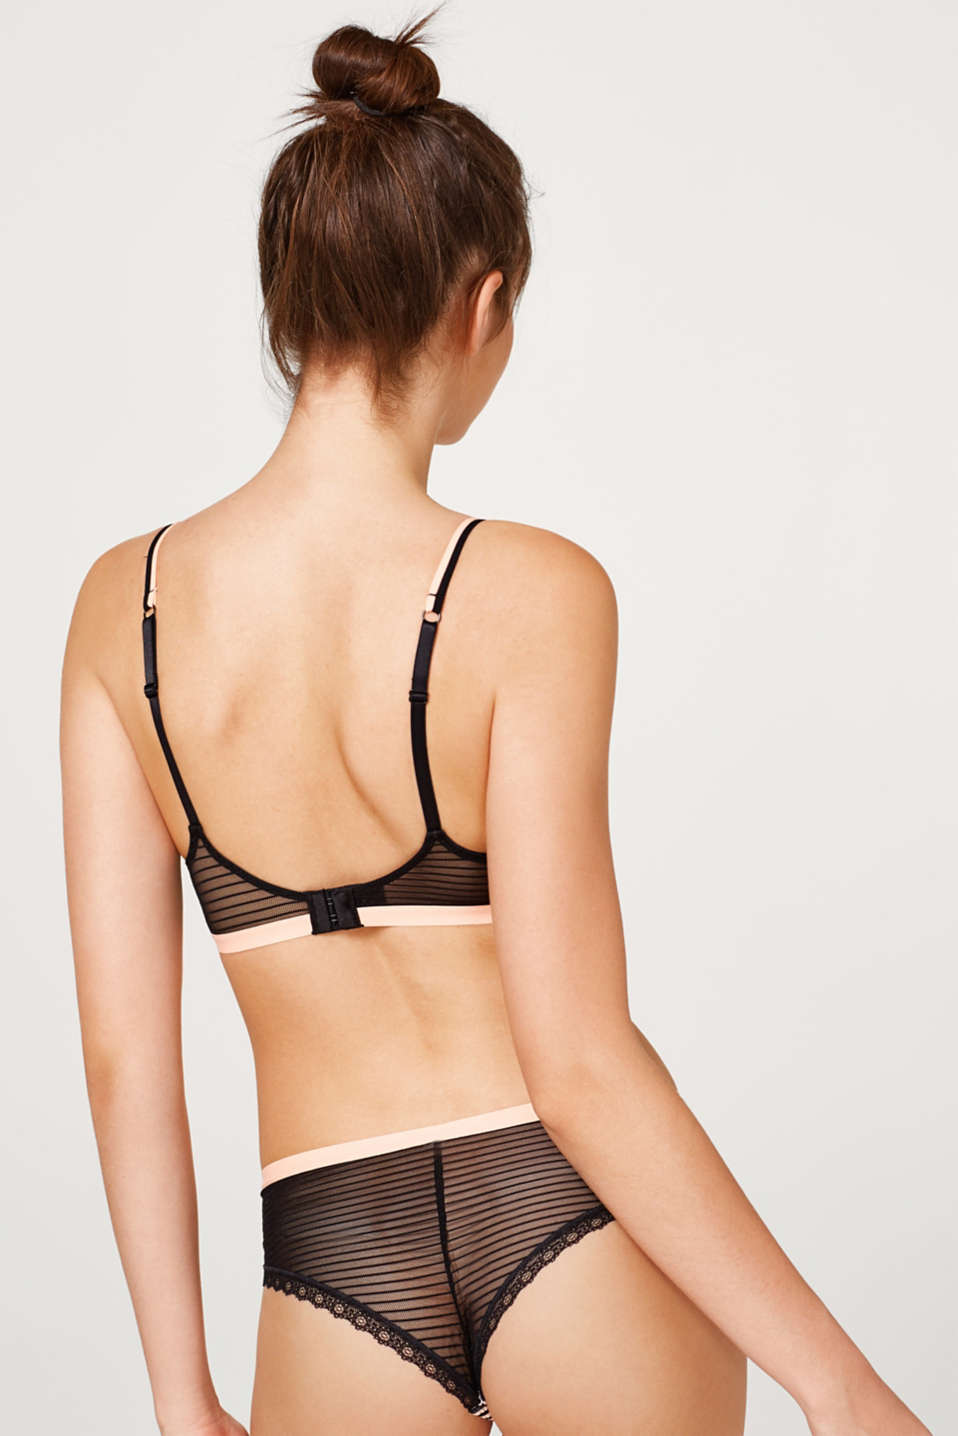 Soft bra with a cat print and textured stripes